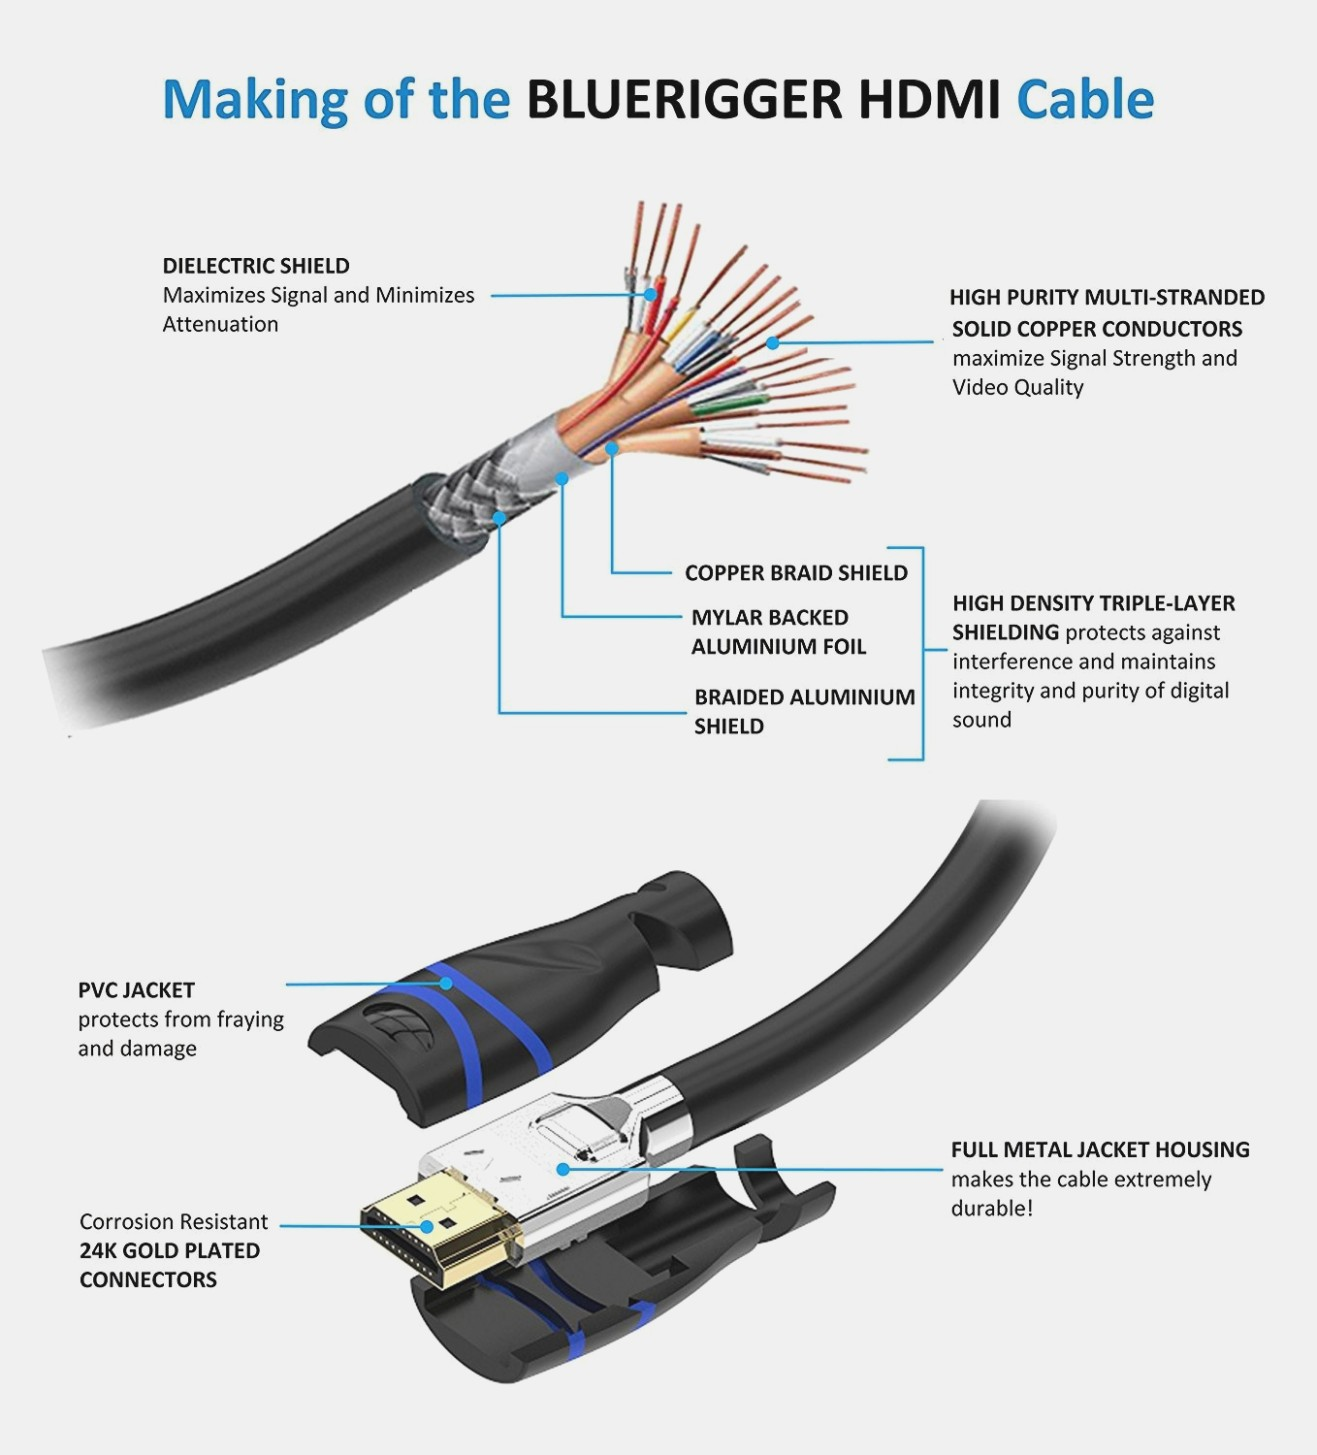 Wiring Diagram For Hdmi Cables Wiring Diagram Expert Awm Hdmi Wire Diagram